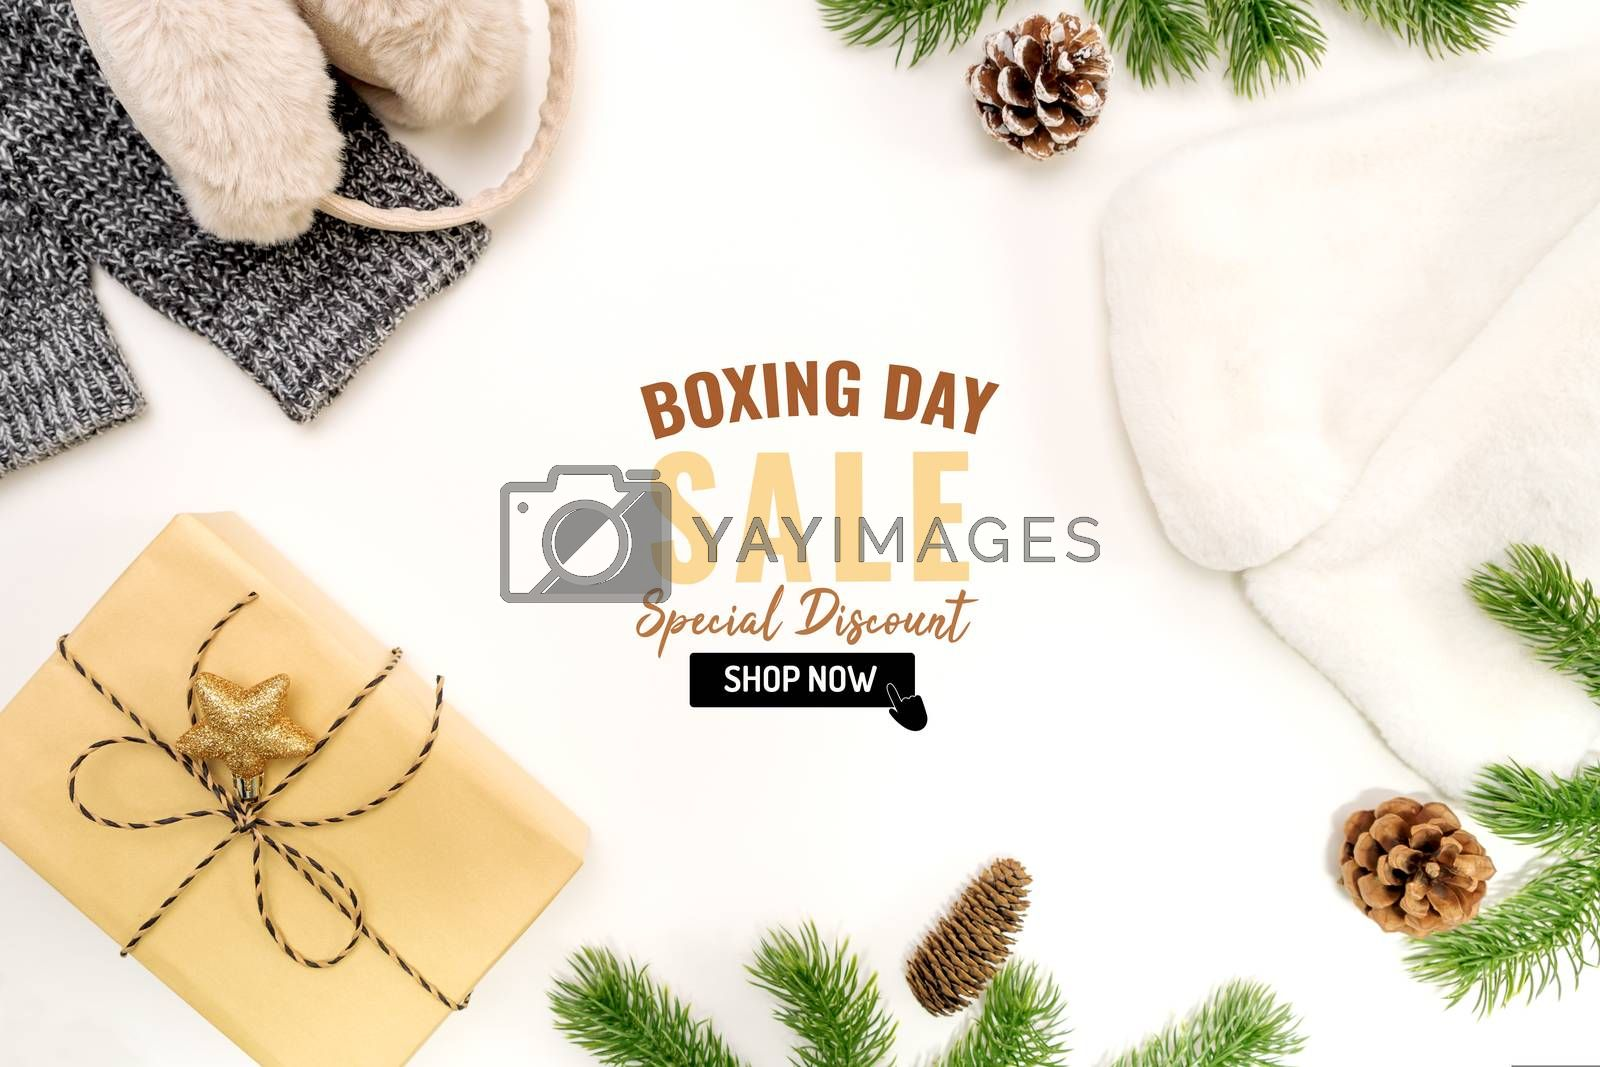 Boxing day sale with Christmas present and xmas decoration on white background